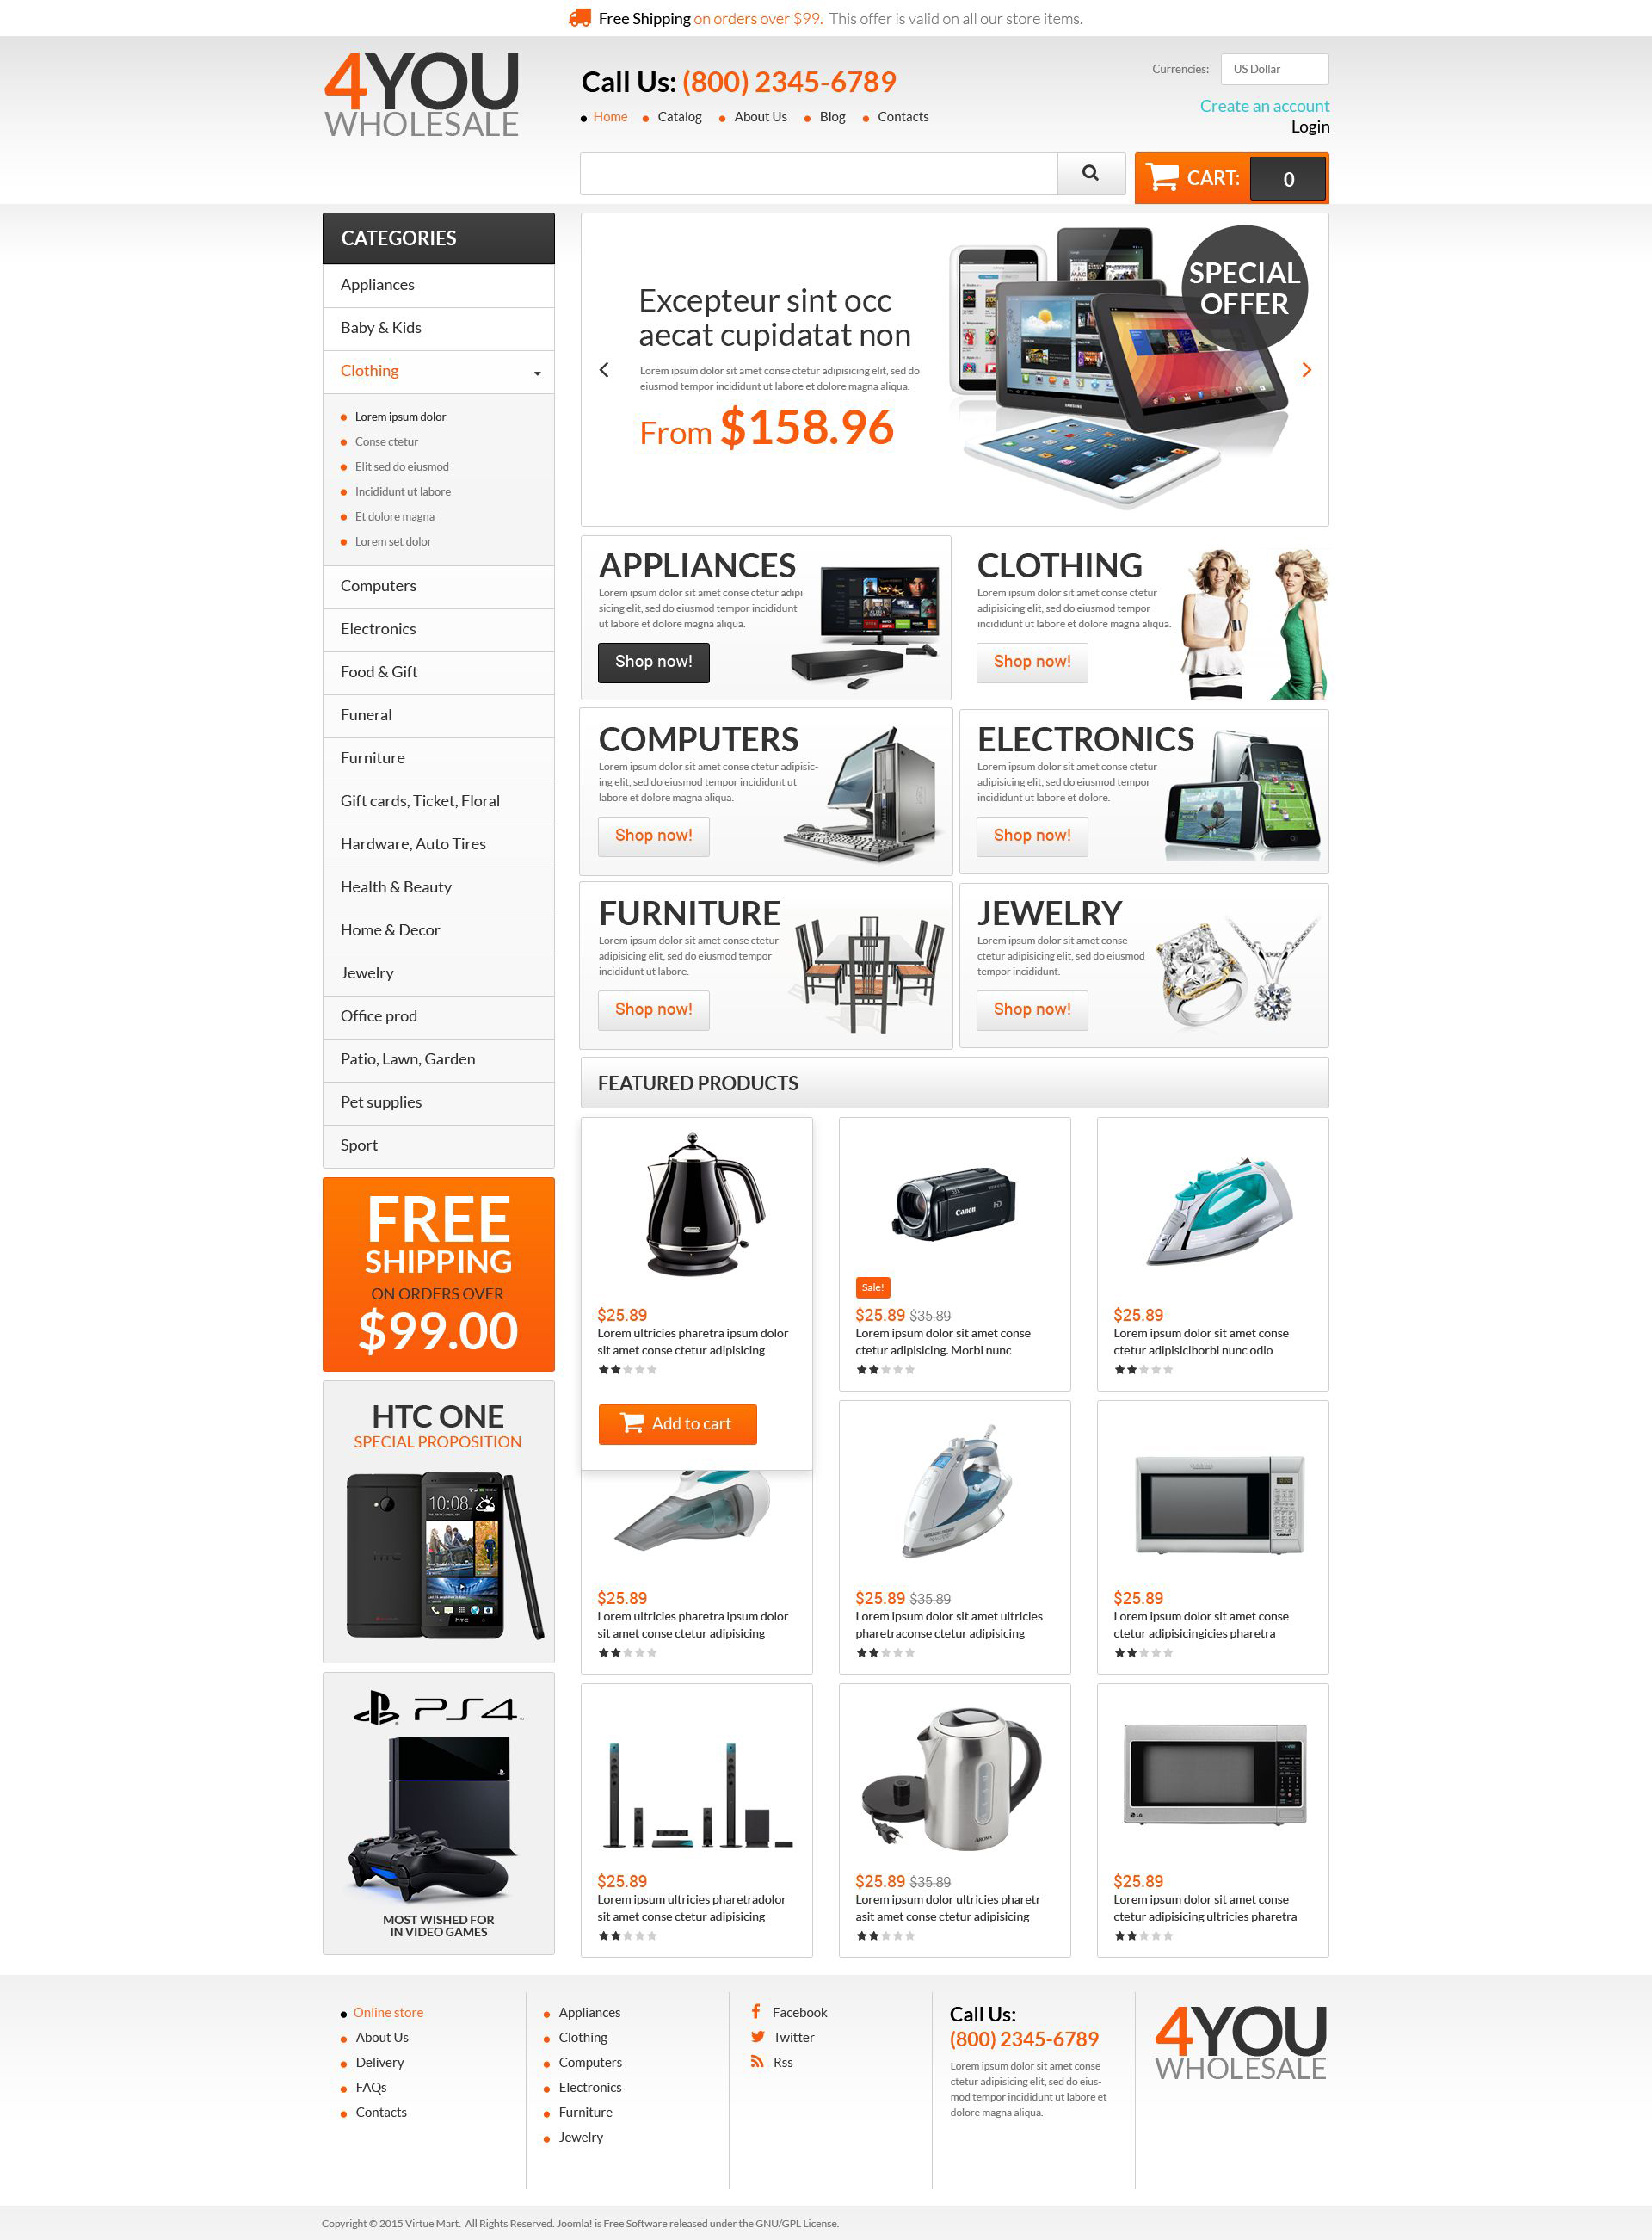 The Whole Sale Online Store VirtueMart Design 53547, one of the best VirtueMart templates of its kind (business, most popular), also known as whole sale online store VirtueMart template, clothes VirtueMart template, food VirtueMart template, electronics VirtueMart template, jewelry VirtueMart template, pricing VirtueMart template, baby VirtueMart template, accessories VirtueMart template, printers VirtueMart template, funeral VirtueMart template, furniture VirtueMart template, gifts VirtueMart template, decor VirtueMart template, beauty and related with whole sale online store, clothes, food, electronics, jewelry, pricing, baby, accessories, printers, funeral, furniture, gifts, decor, beauty, etc.